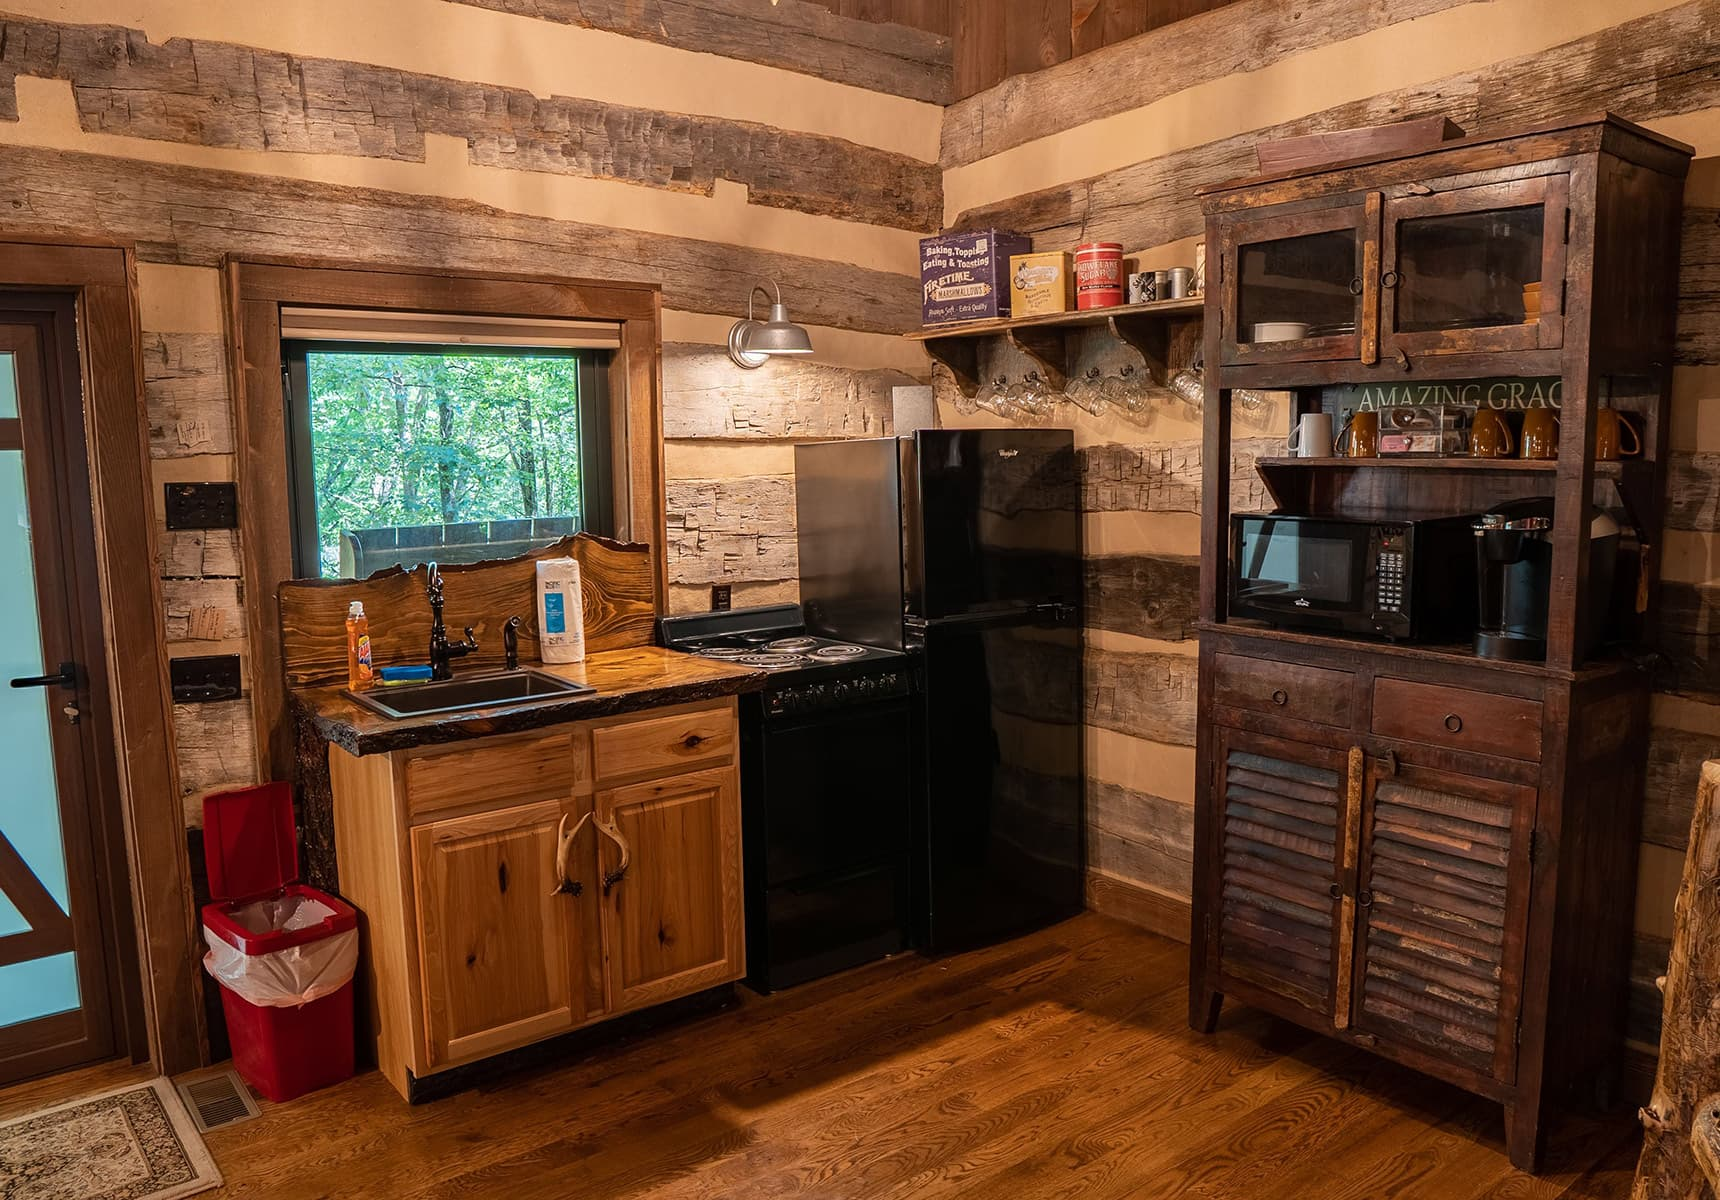 Wilderness Lodge full kitchen with a sink a refrigerator and microwave